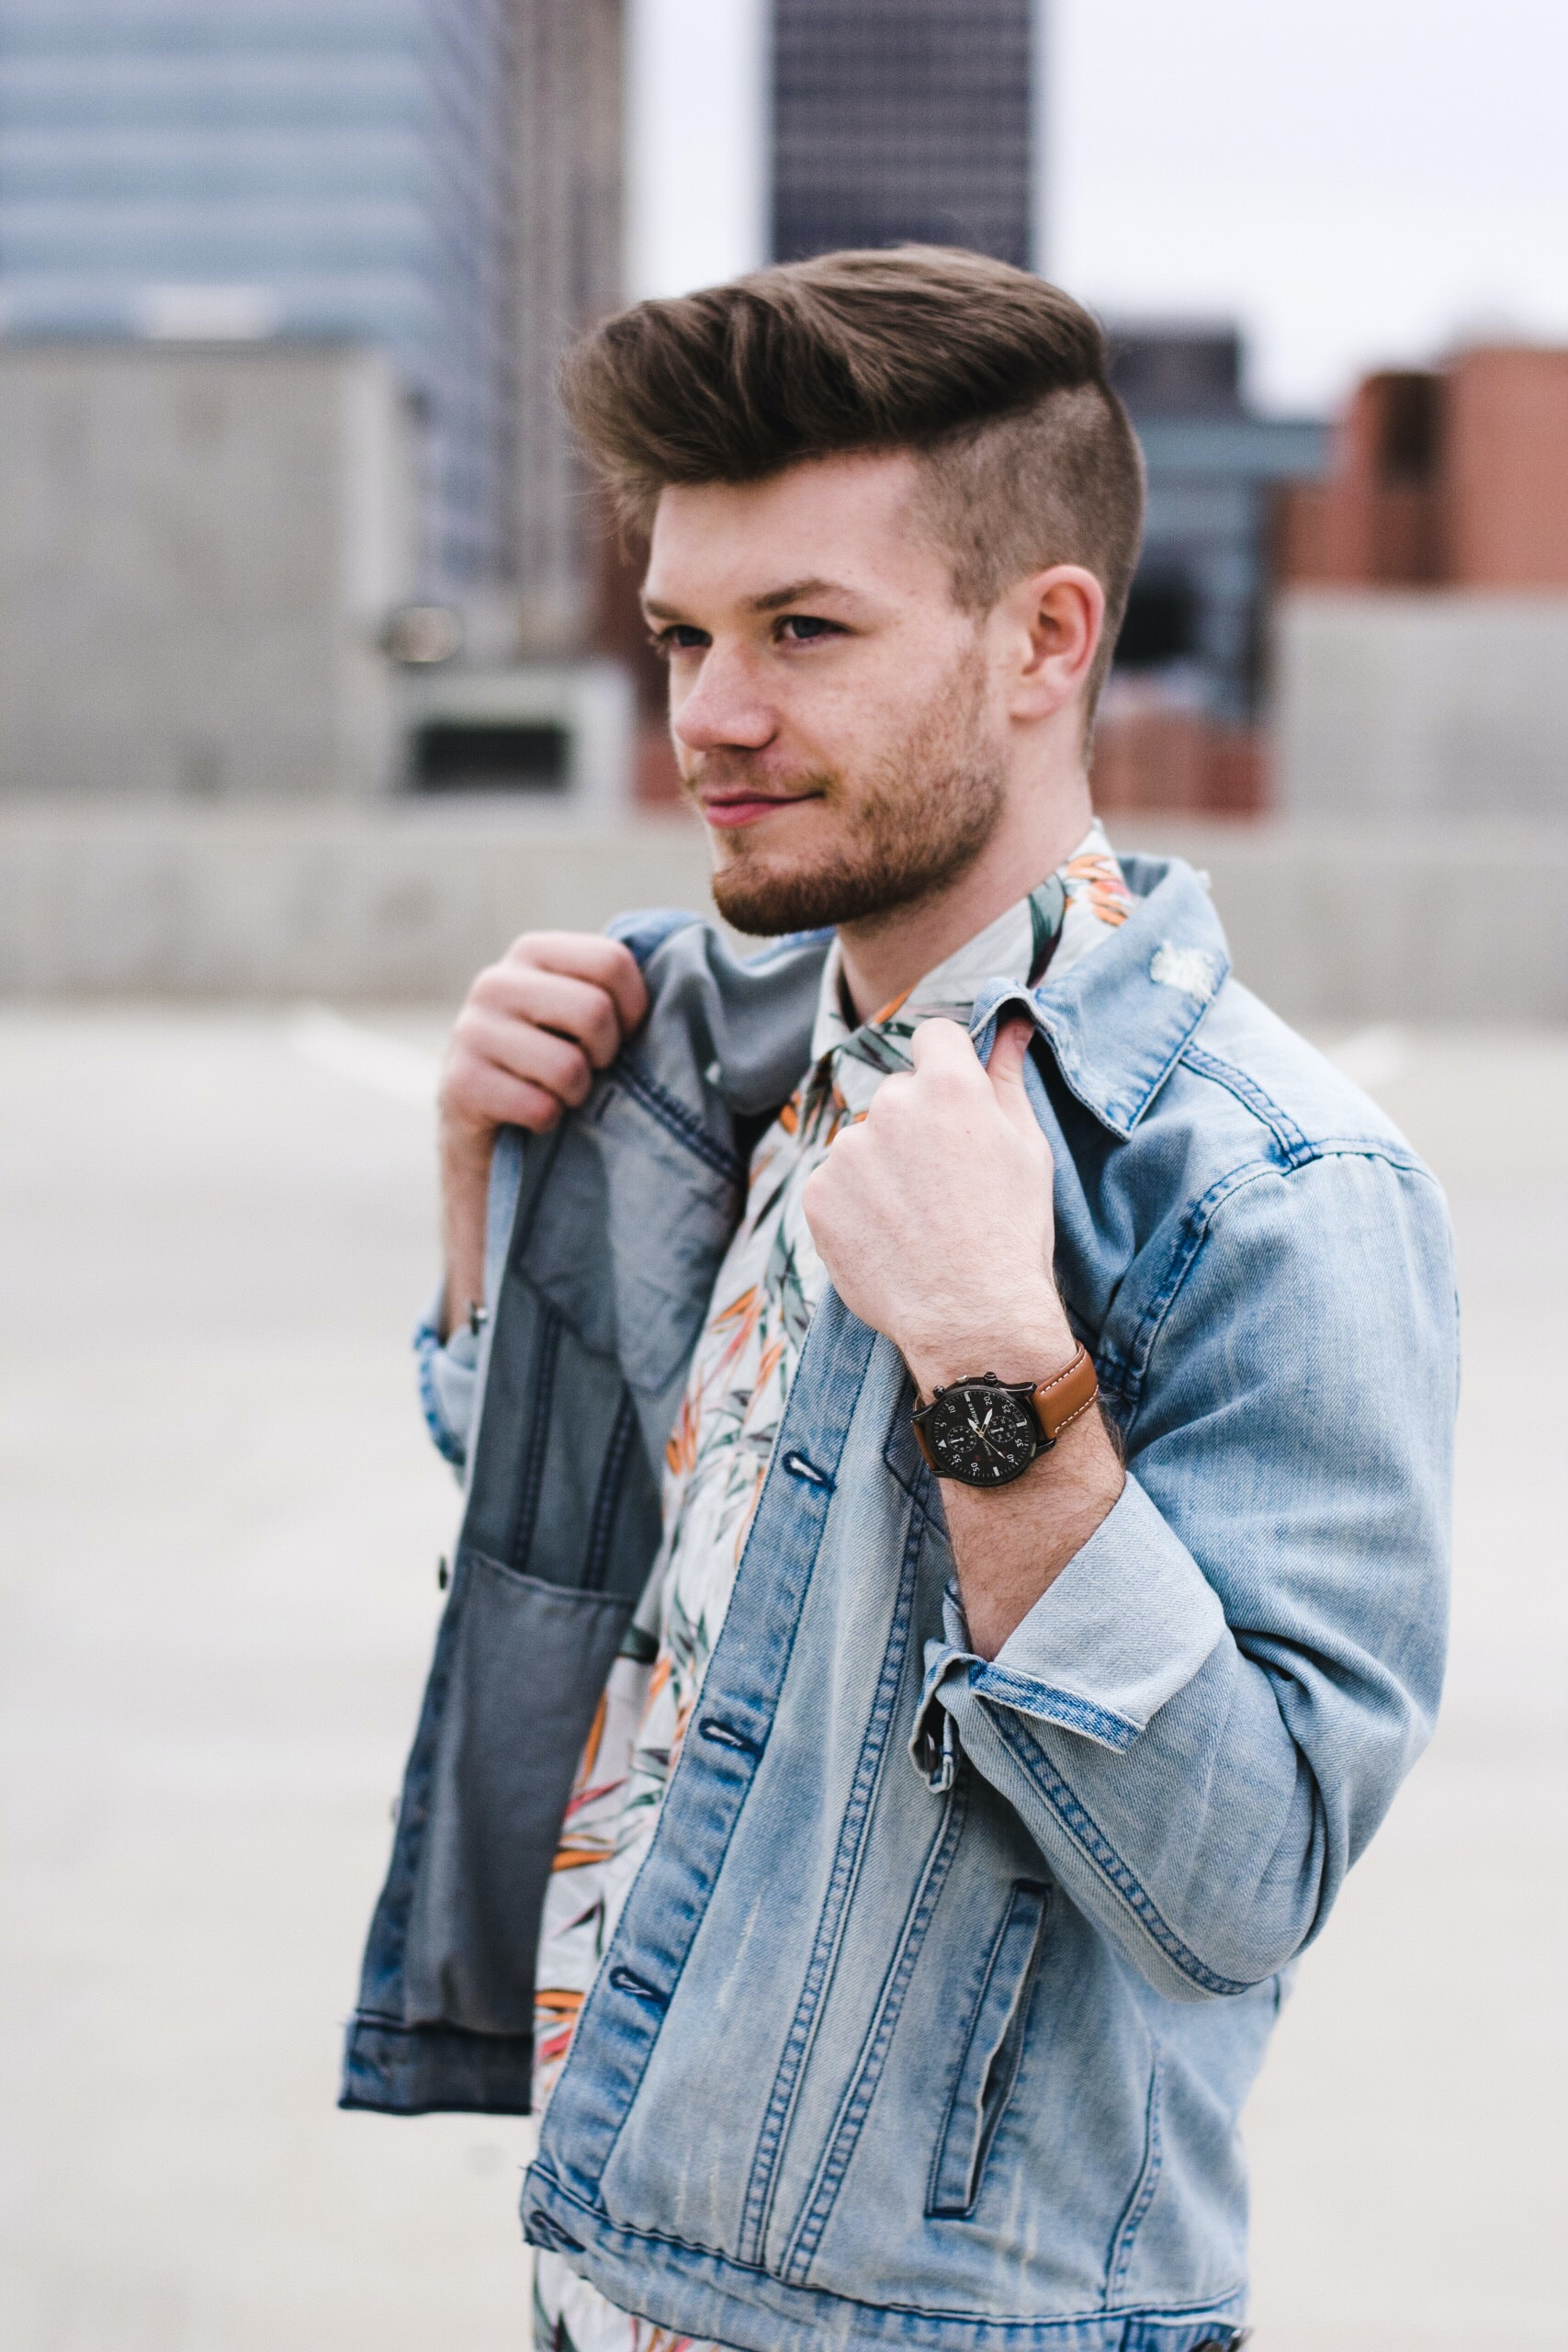 man modeling denim jacket